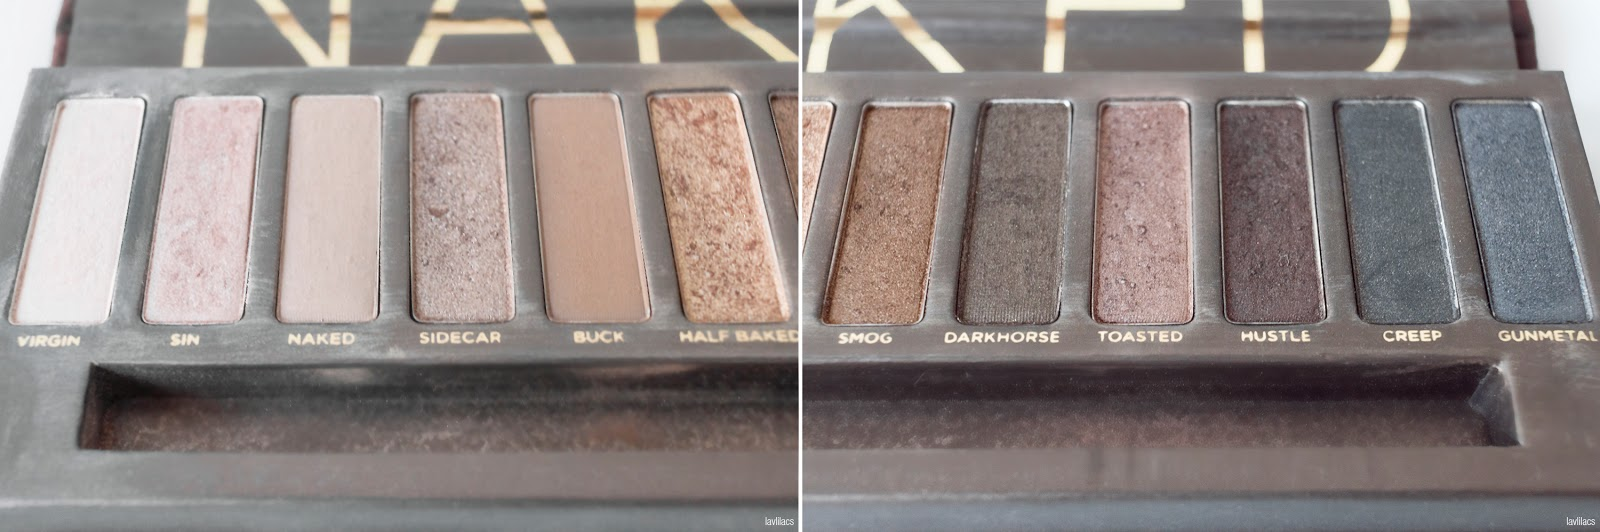 lavlilacs 2018 Project Make a Dent - beginning - Urban Decay Naked Palette